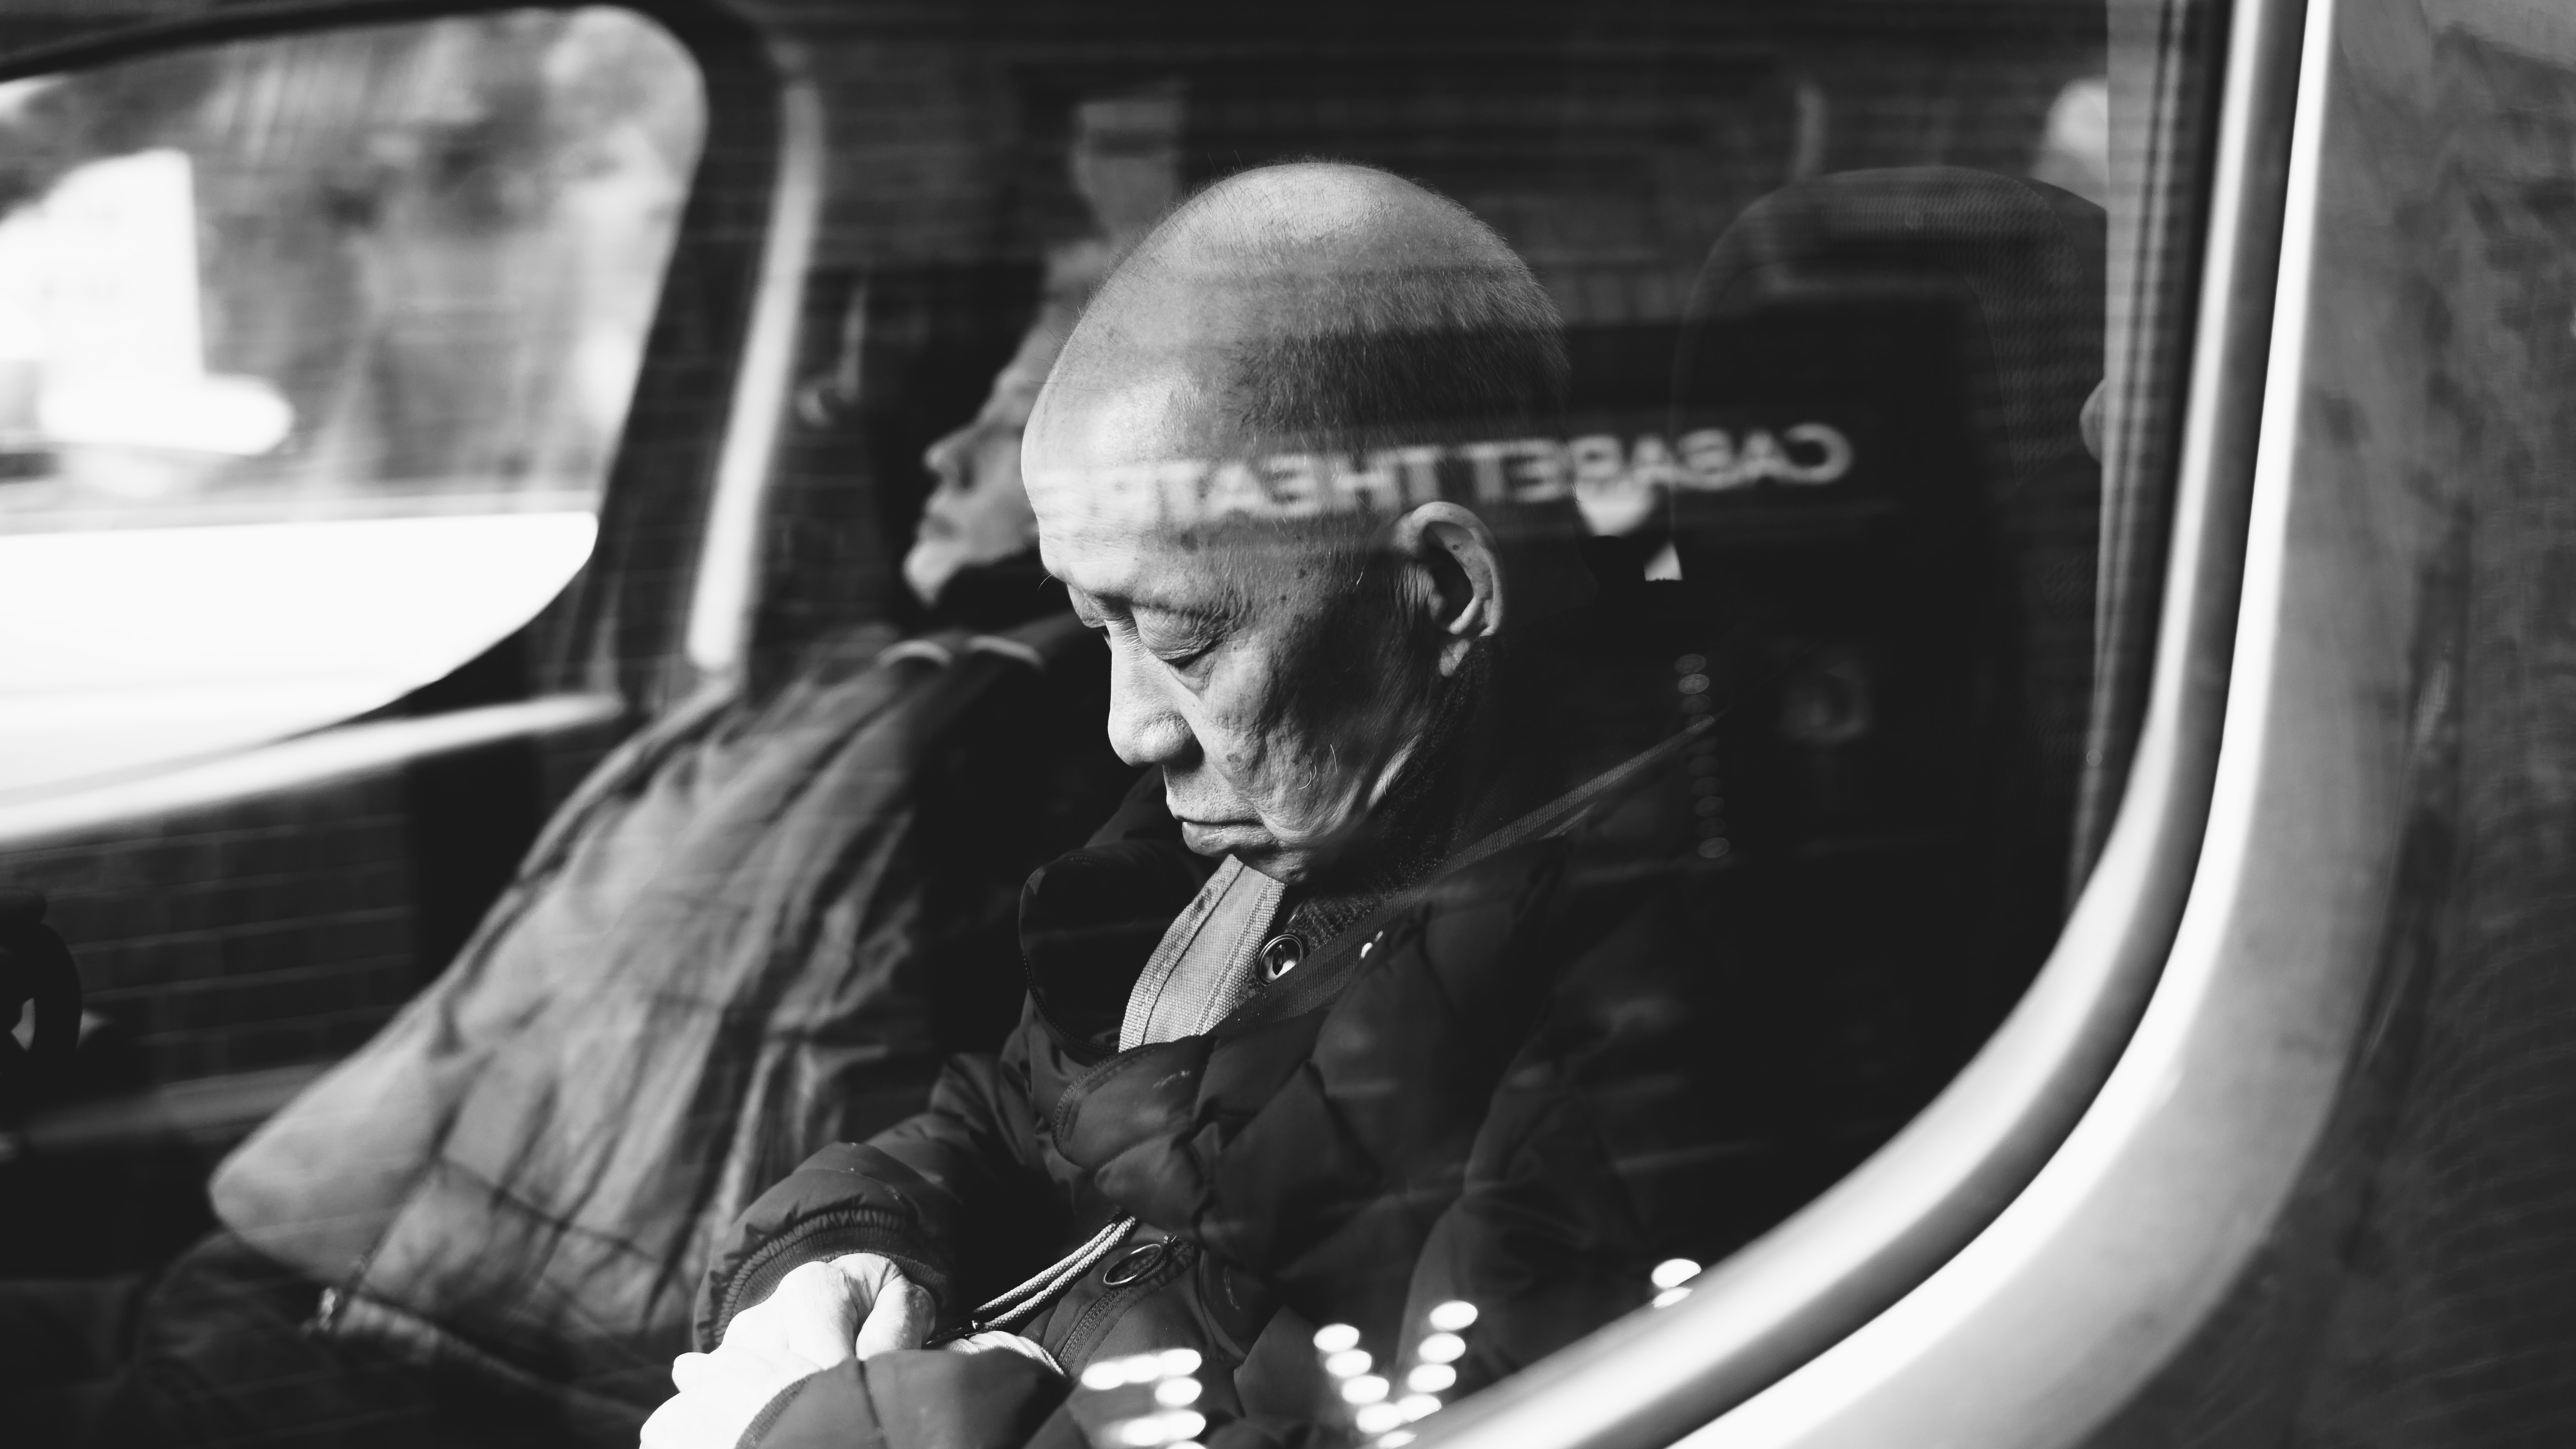 grayscale photo of man inside vehicle sleeping